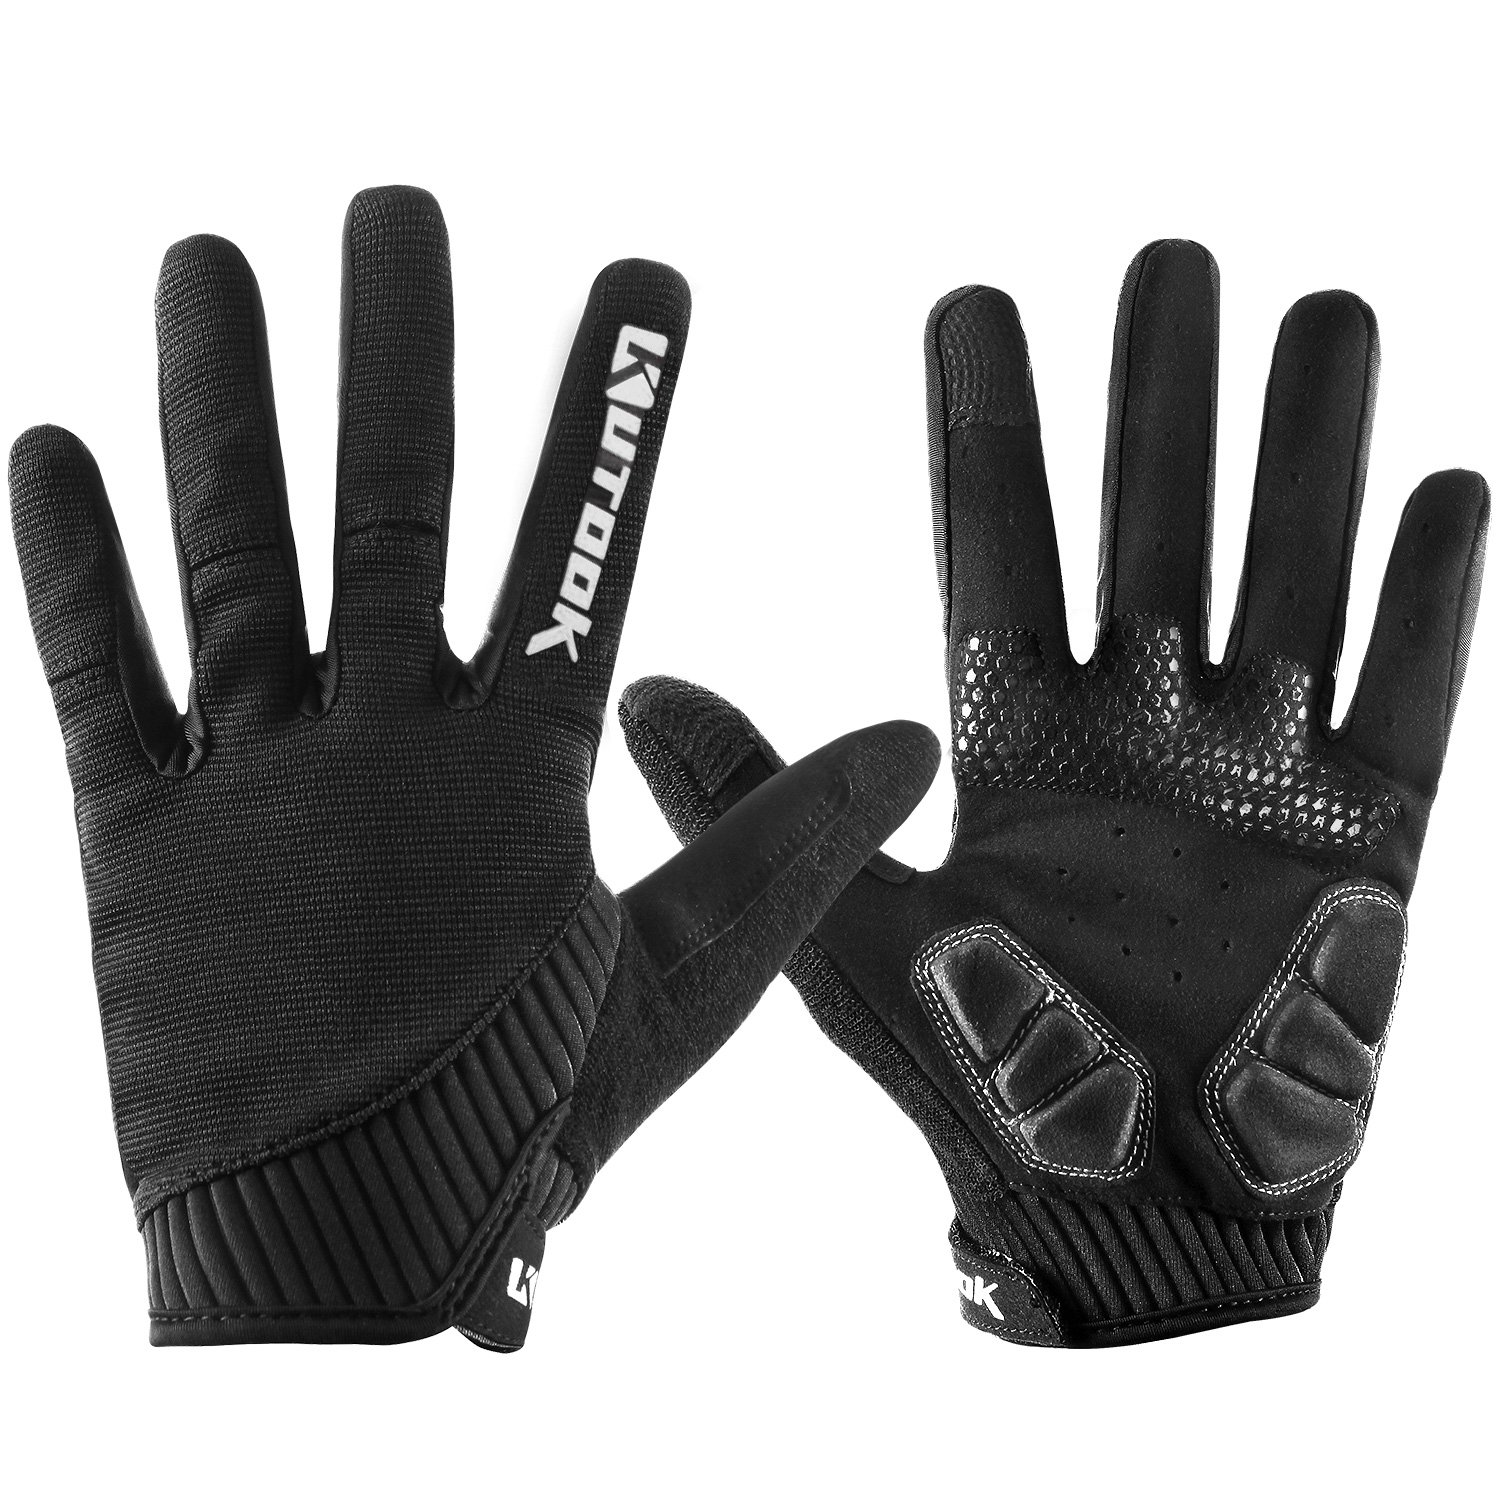 Dirtpaw Czar Gloves For Motocross Bike Scooter Dirt Bike Motorcycle Glove Moderate Cost Home